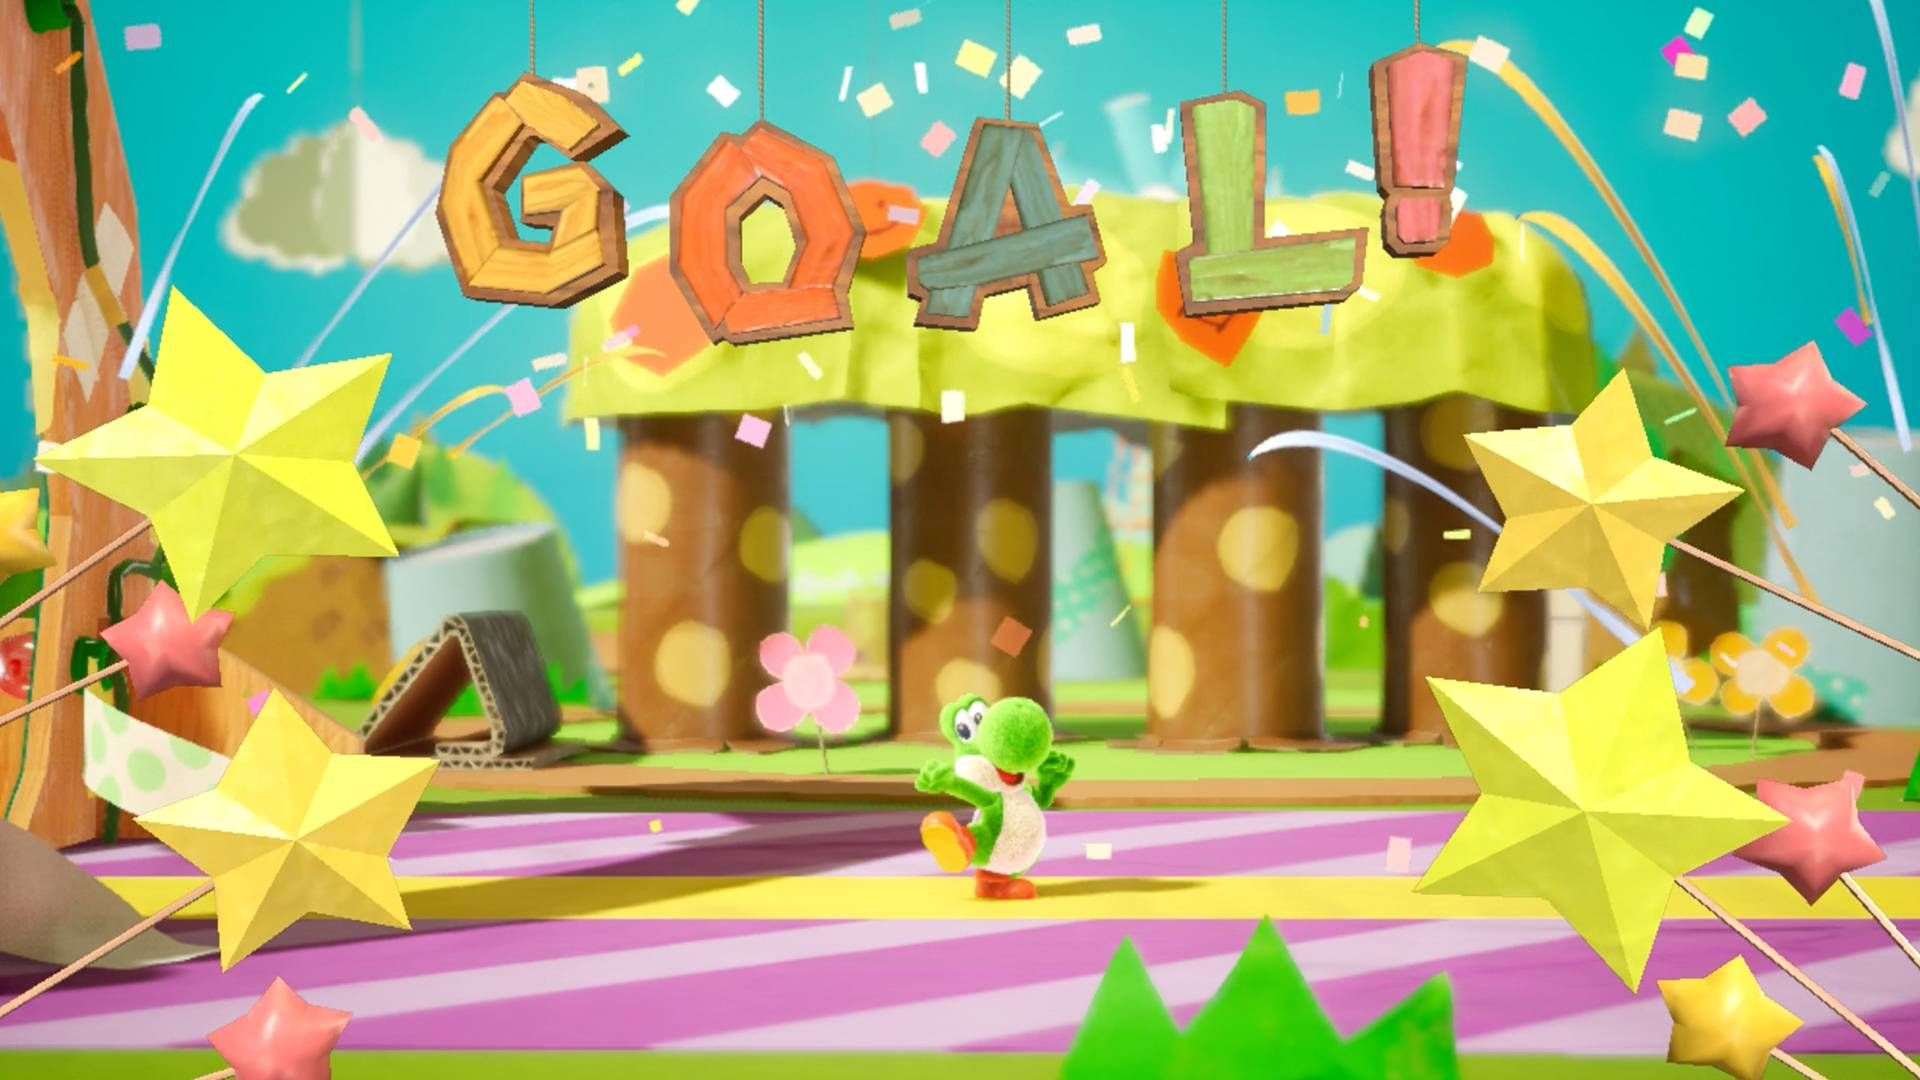 Yoshi's Crafted World Backgrounds